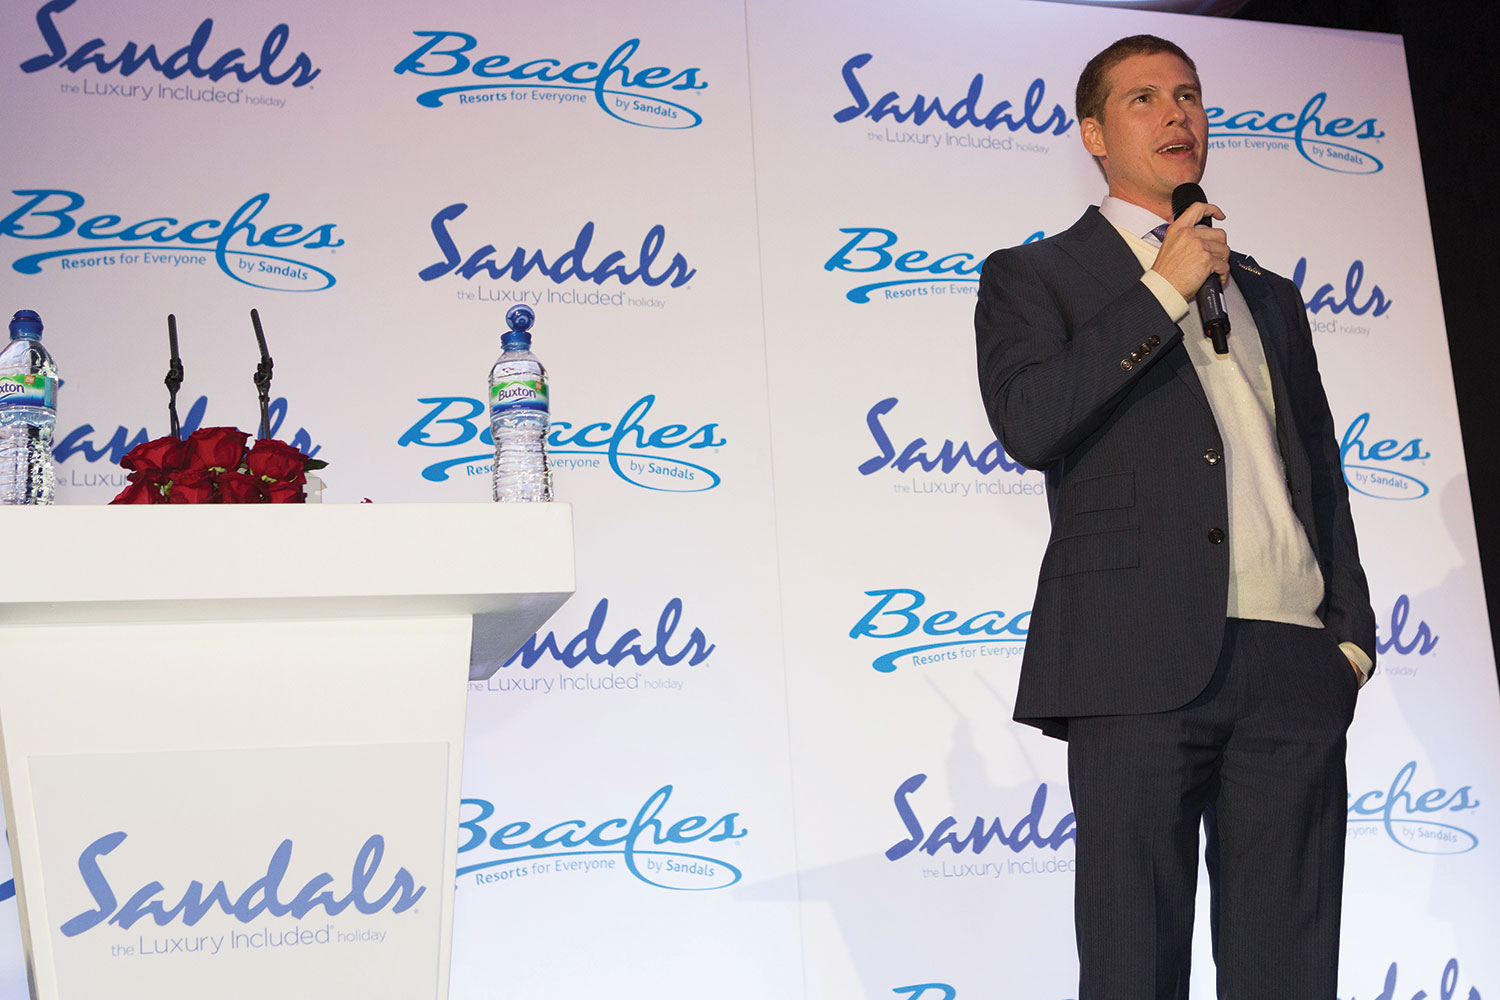 Interview: Adam Stewart on keeping Sandals at the top of its game